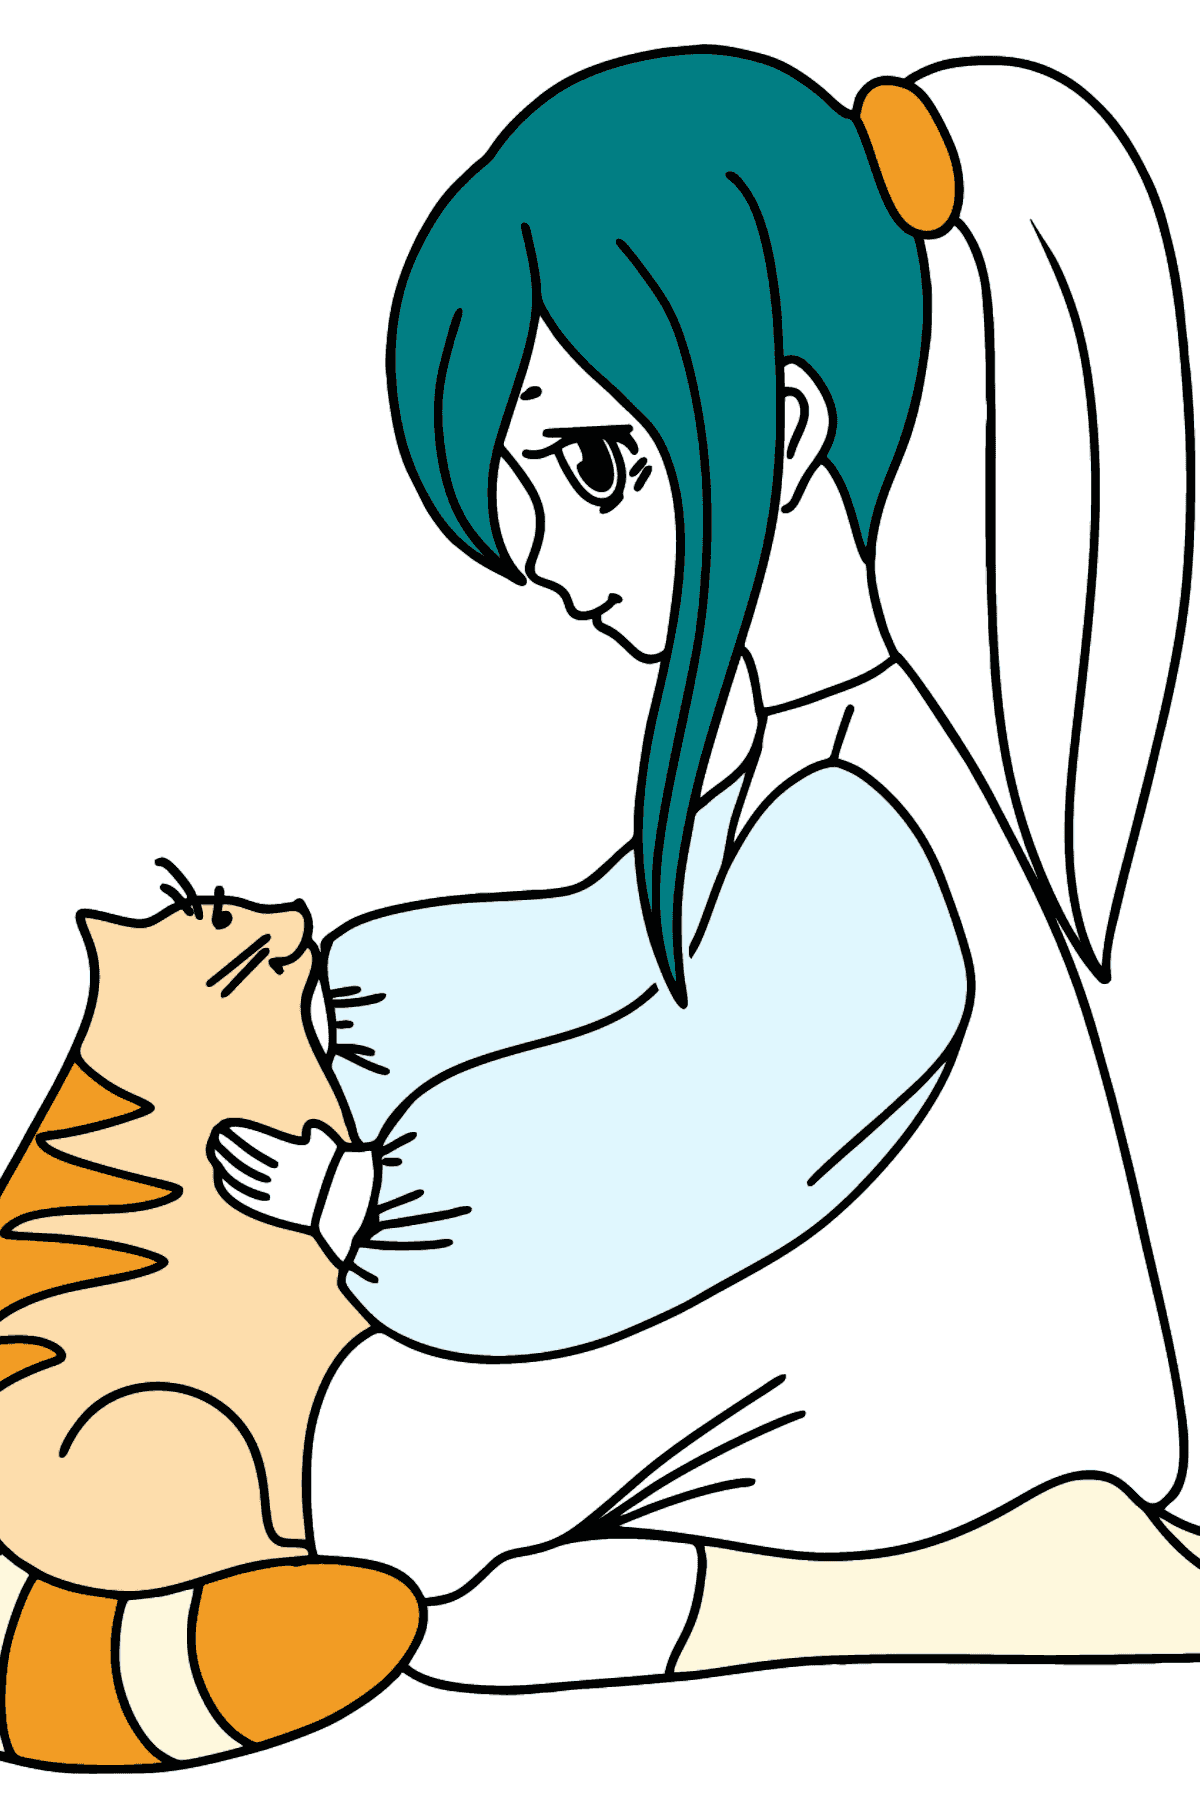 Anime Girl with Cat coloring page - Coloring Pages for Kids